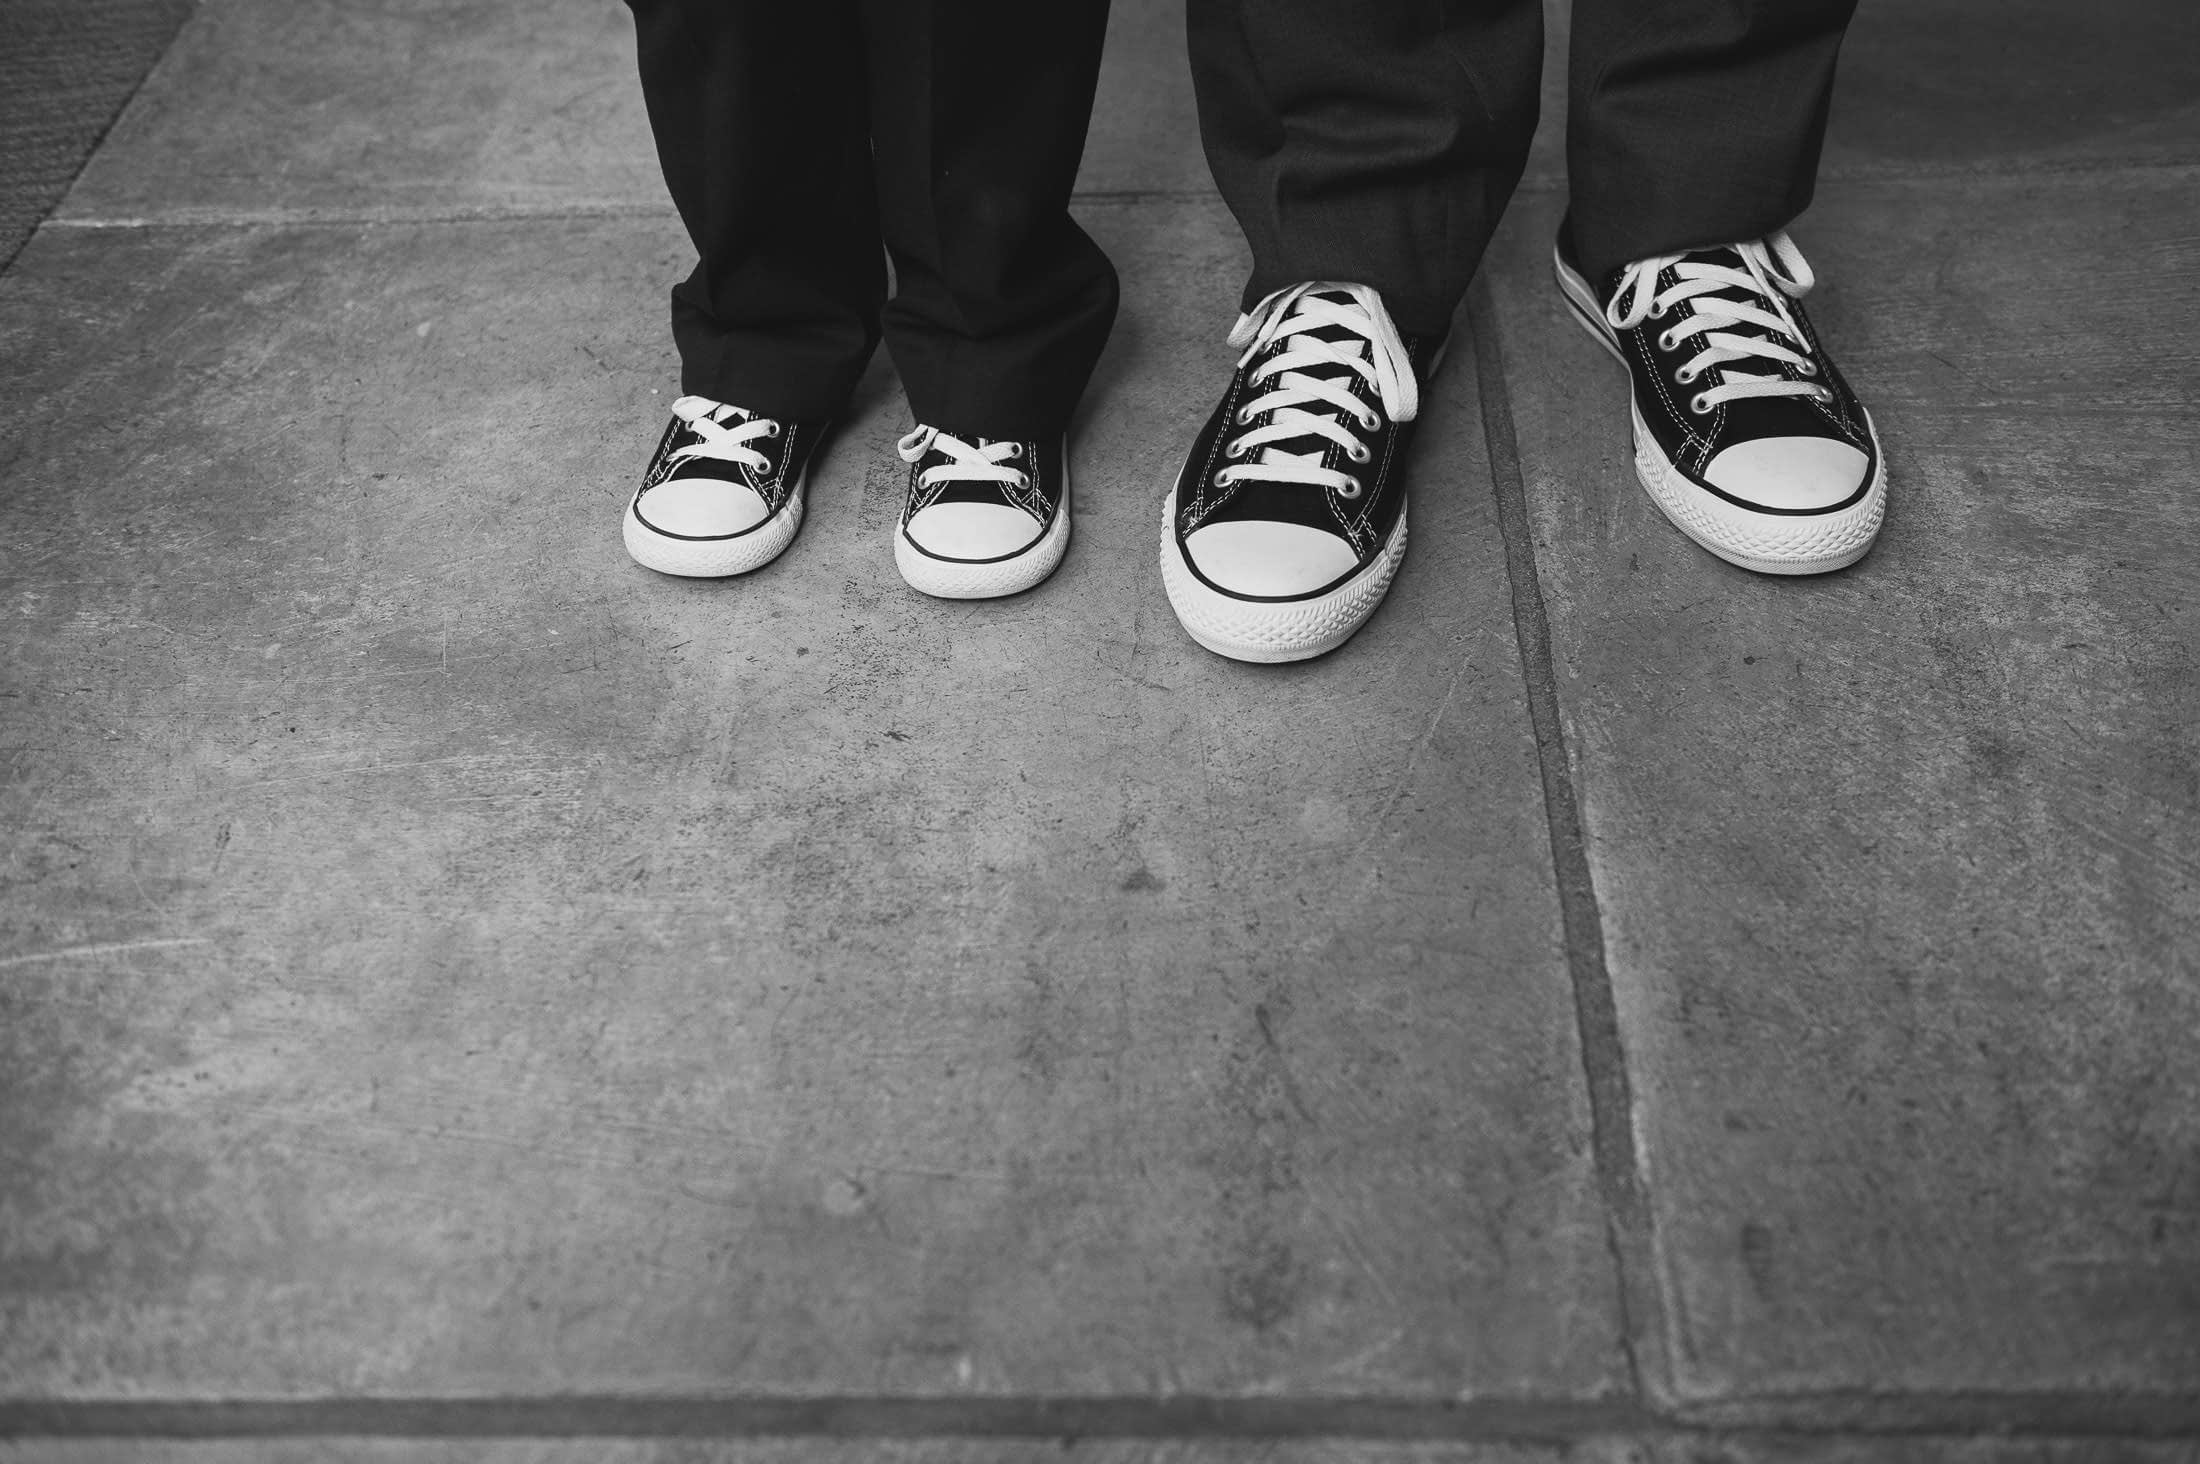 Artistic wedding detail of adult and kid wearing converse